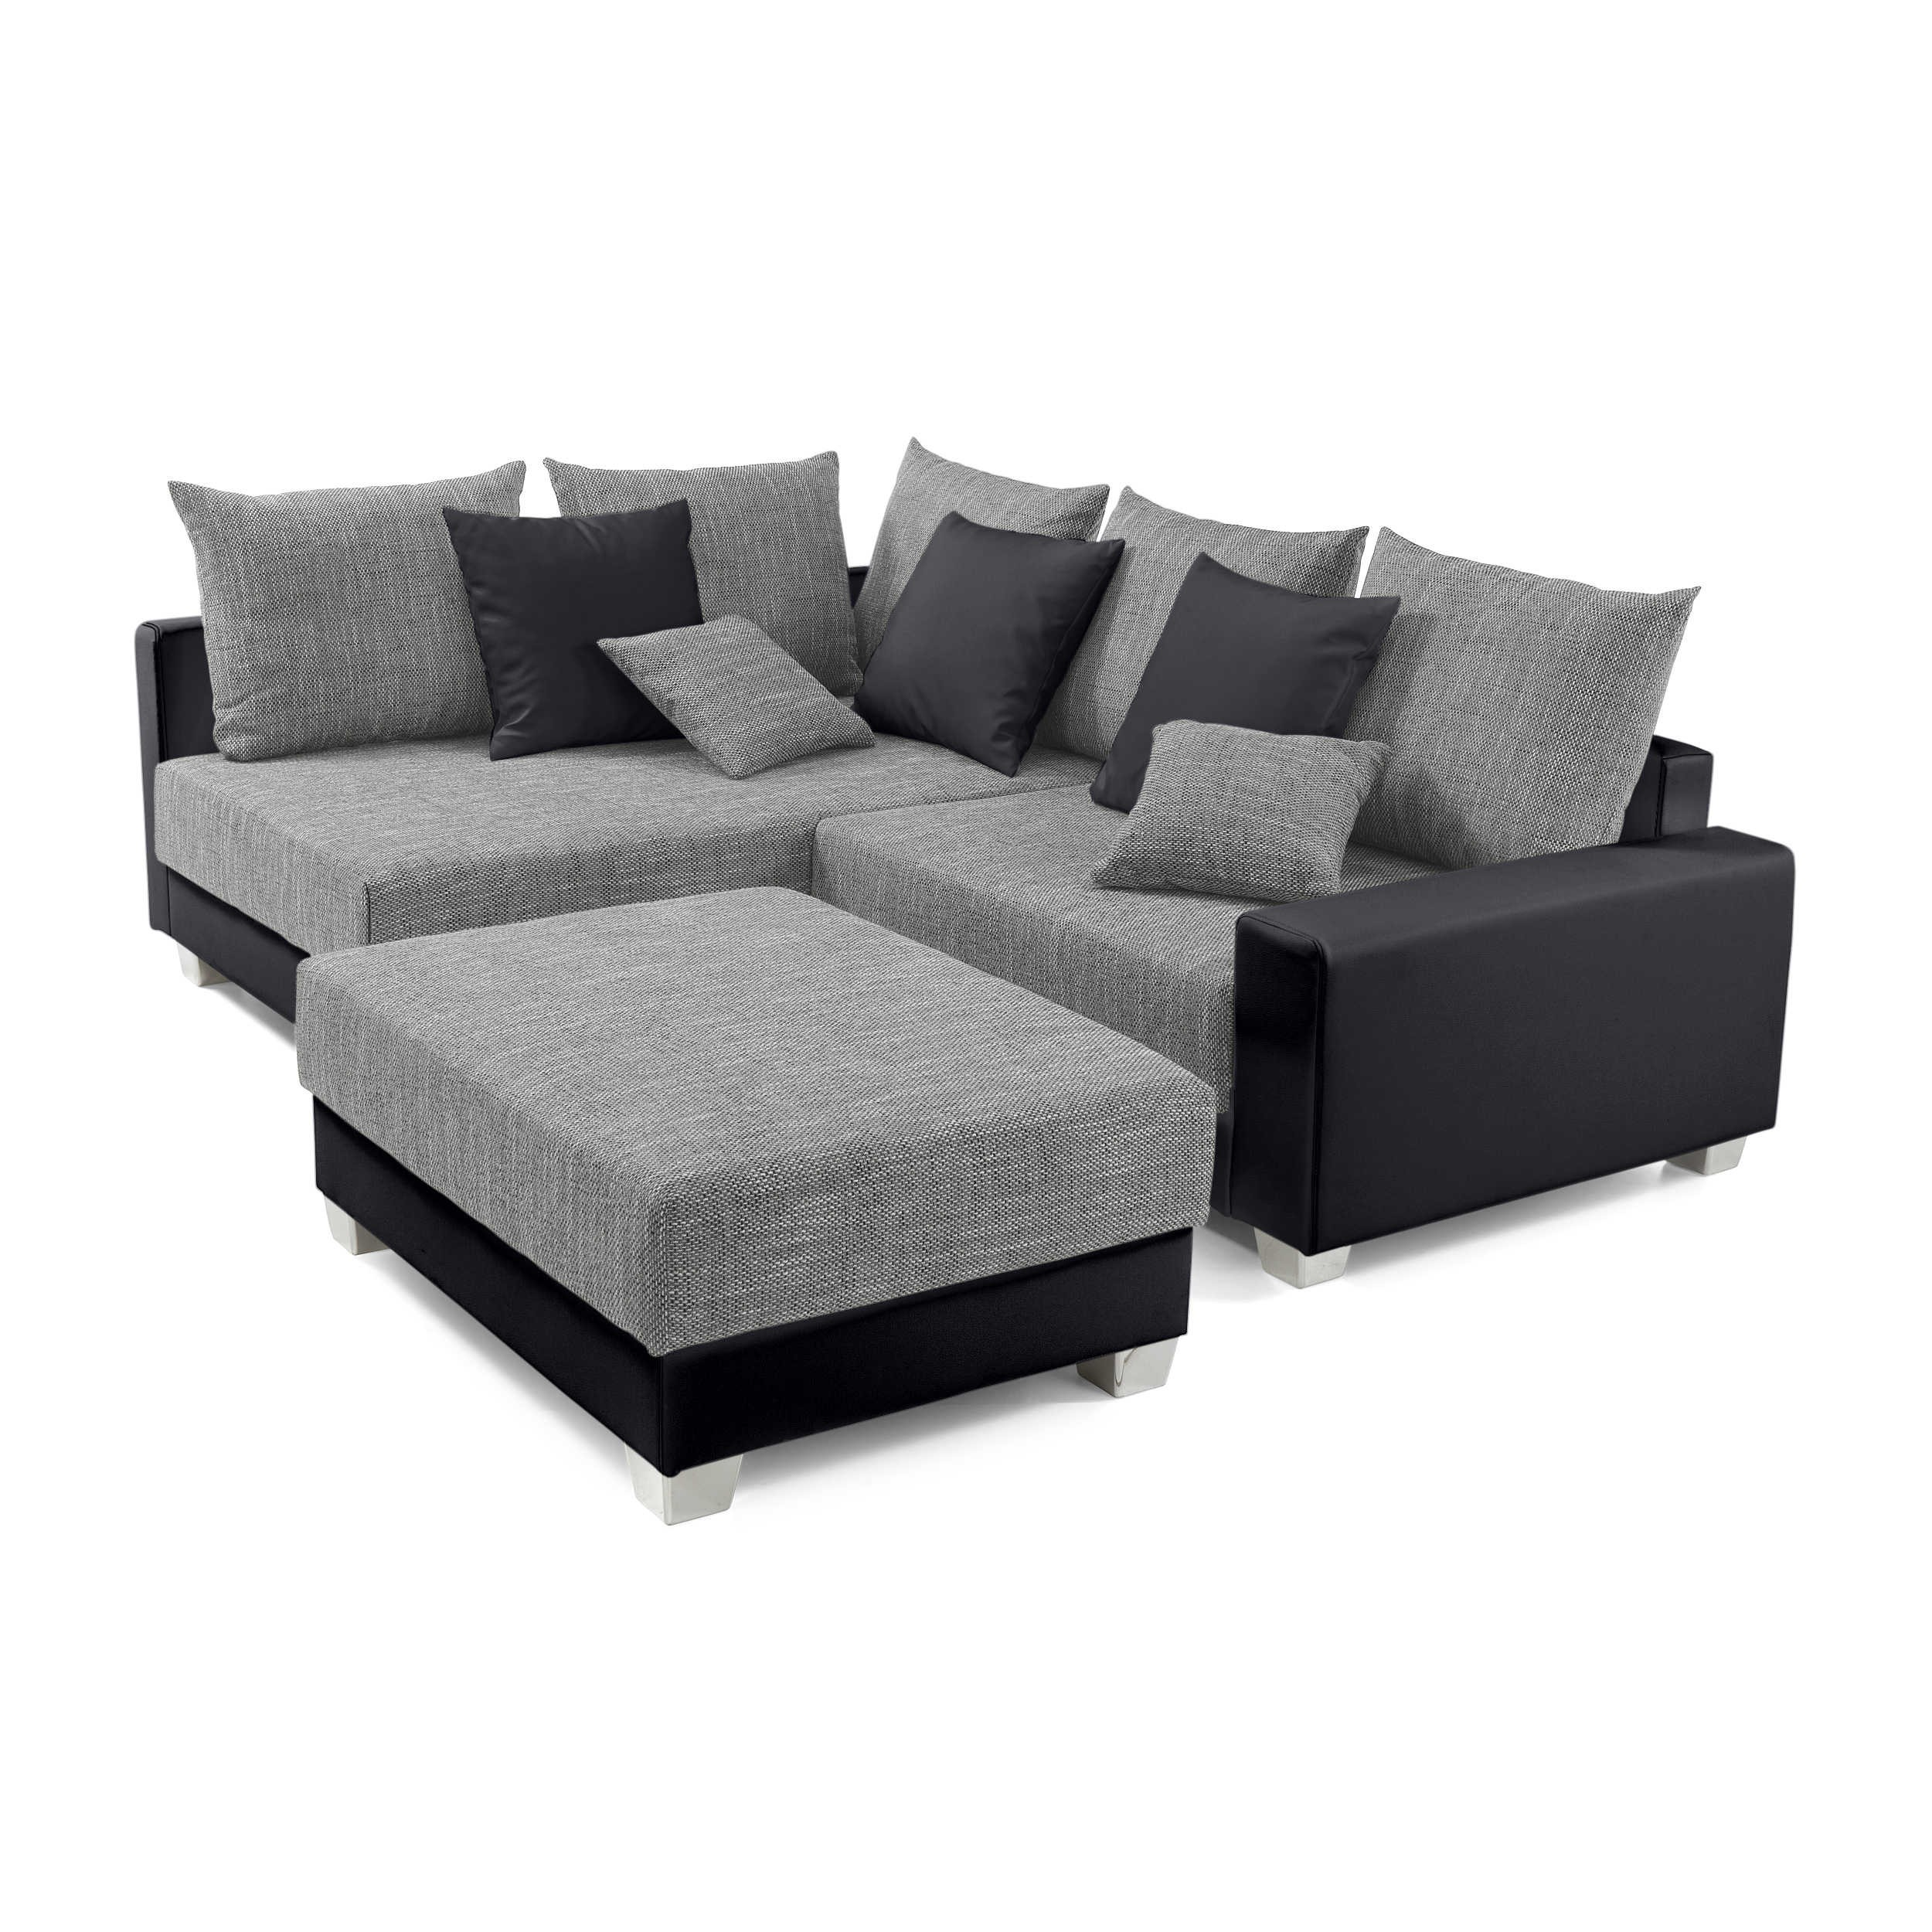 ecksofa mit hocker murlo grau stoff online kaufen bei woonio. Black Bedroom Furniture Sets. Home Design Ideas